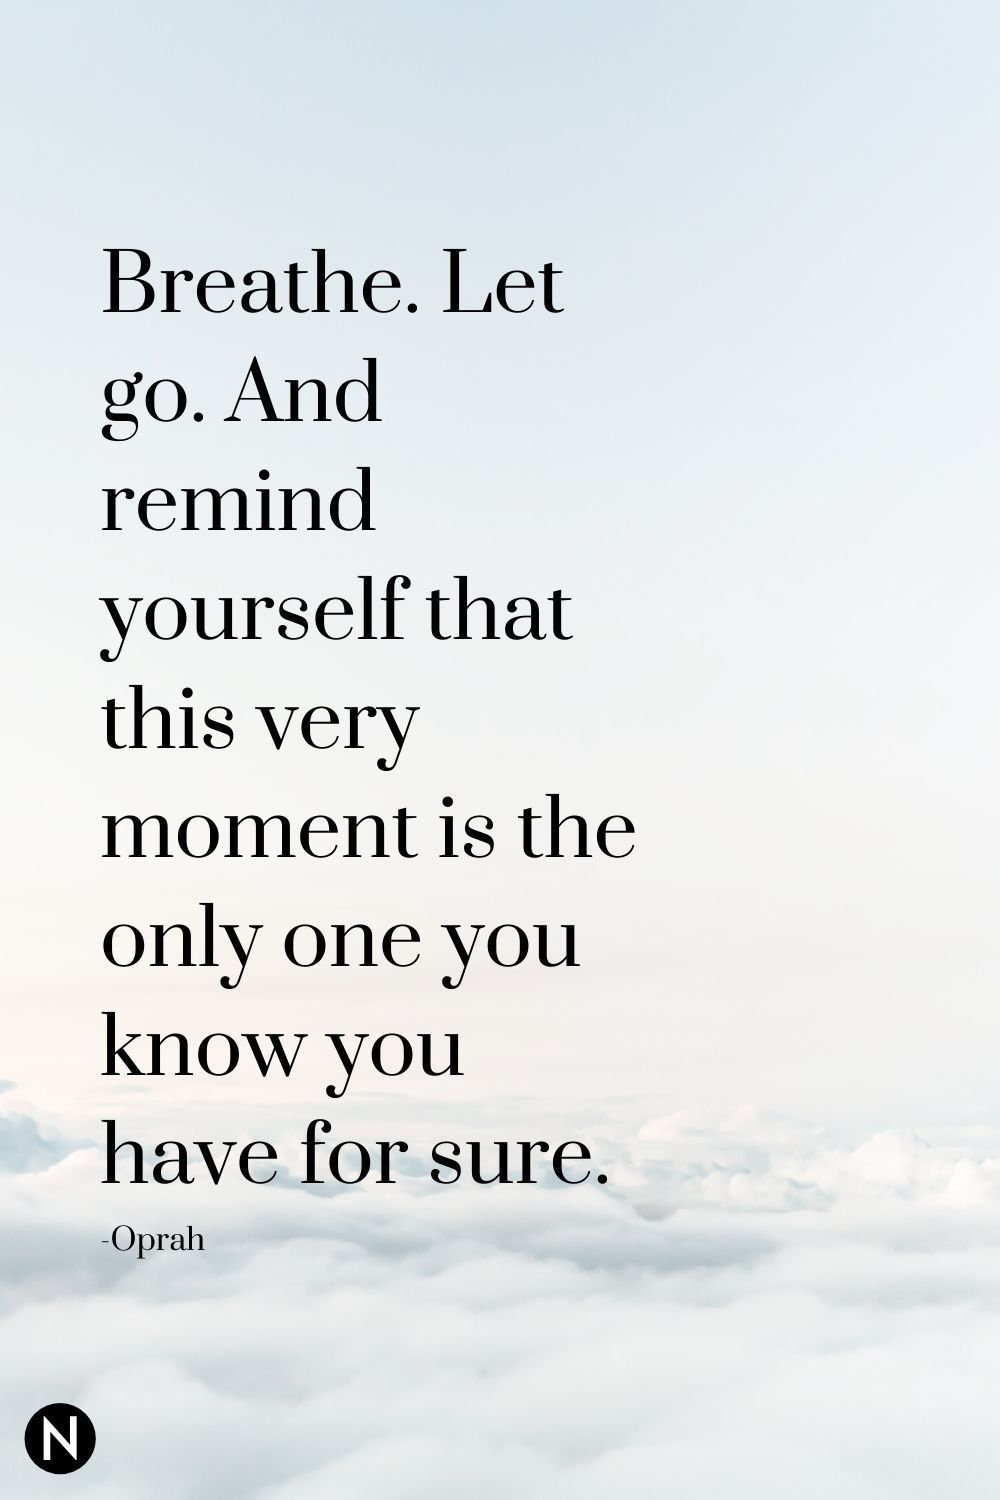 25 Inspirational Quotes To Relieve Stress Next Level Gents If You Re Feeling Stressed Let These Inspirational And Relax Quotes Stress Quotes Calm Quotes